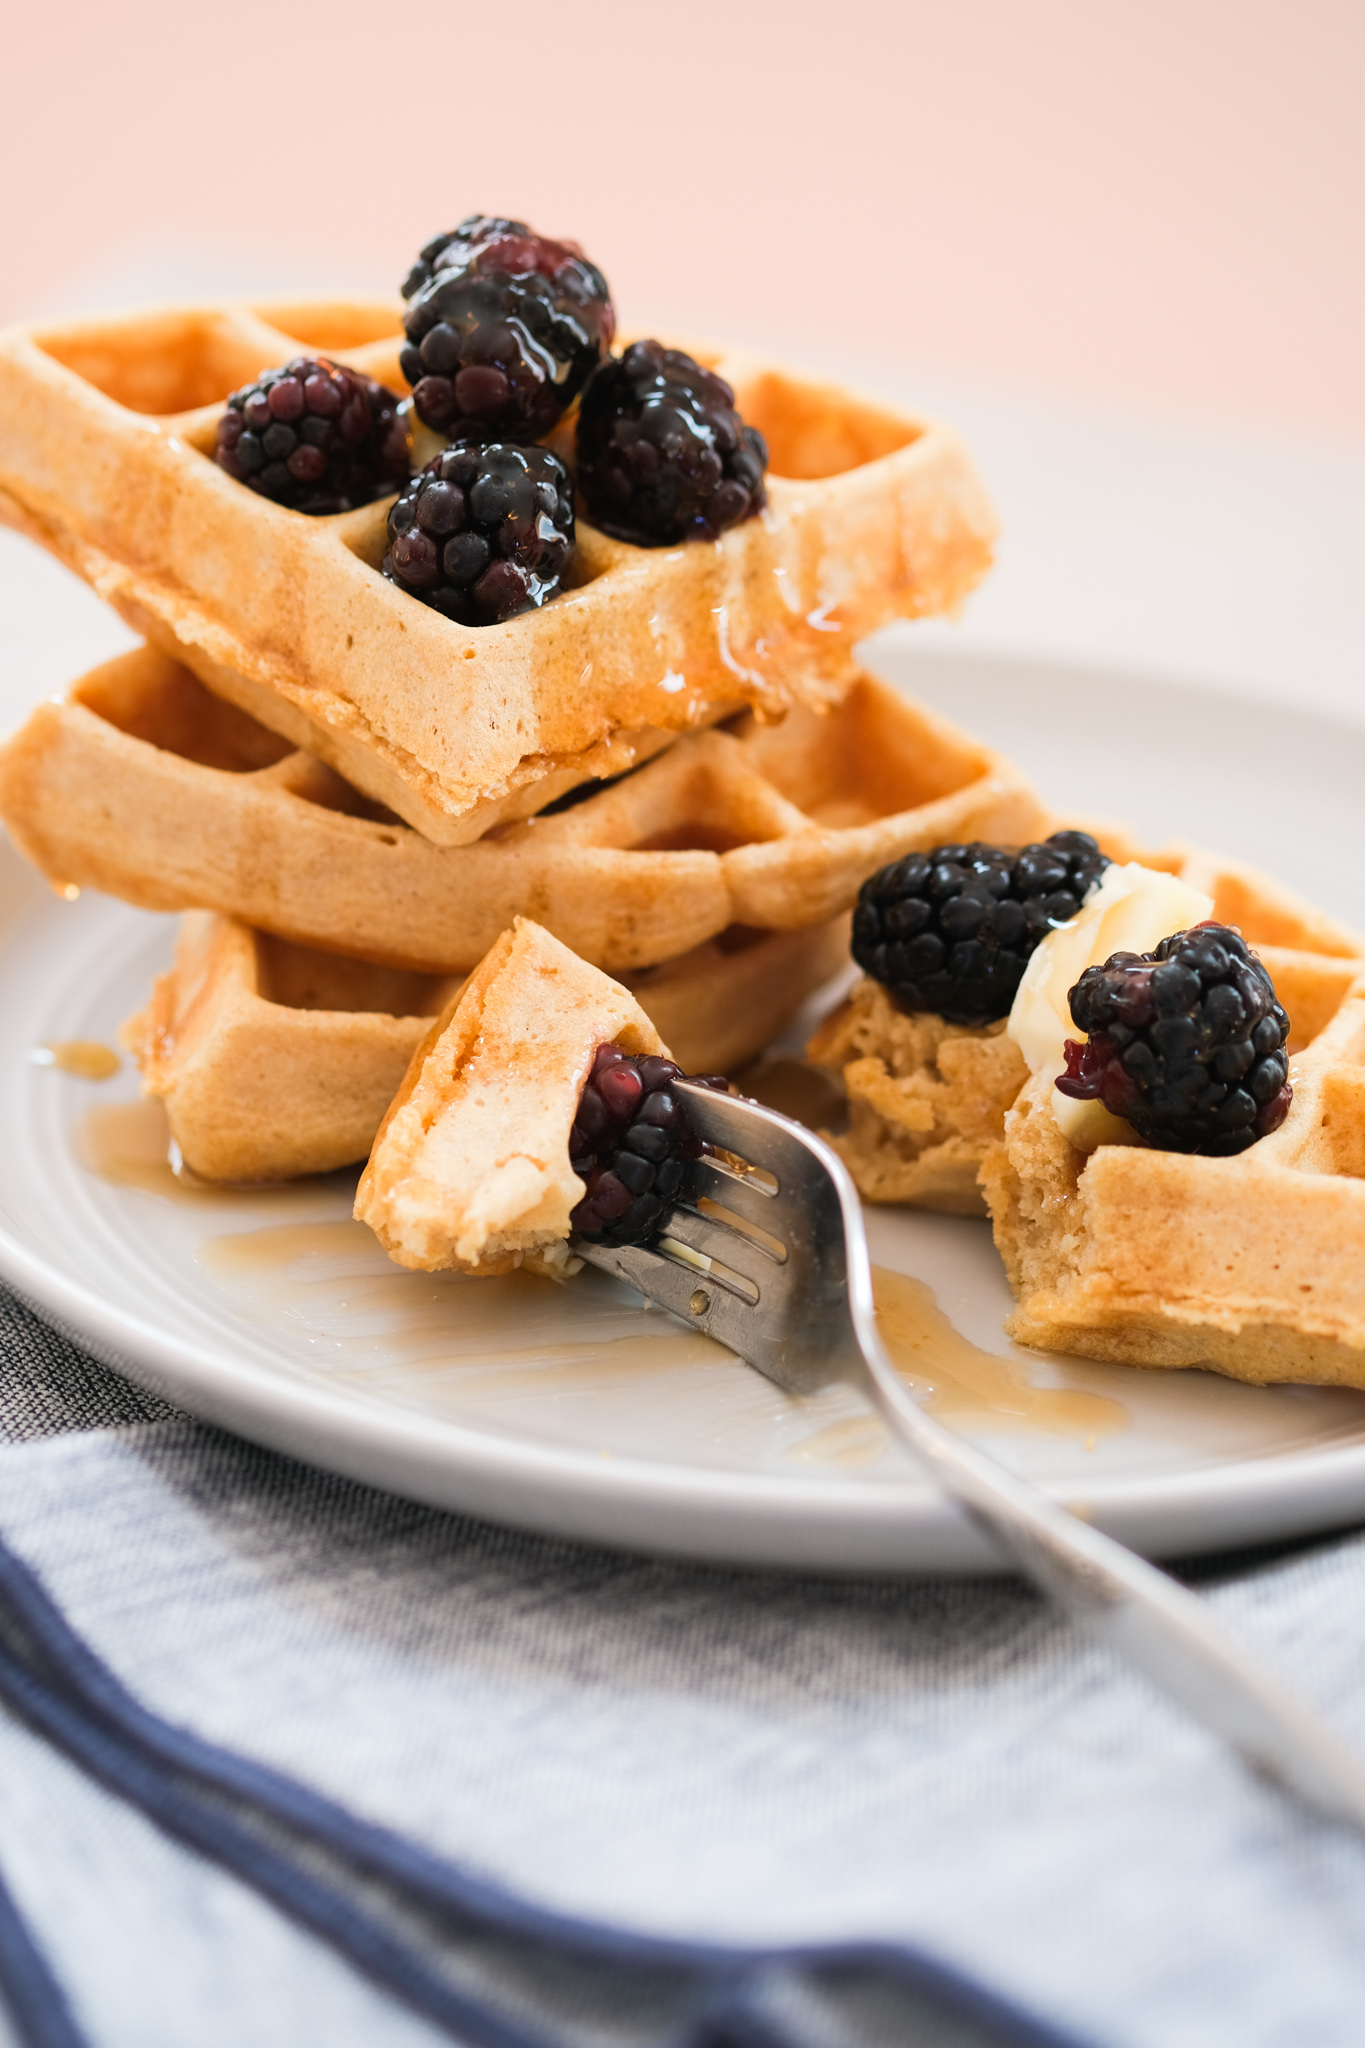 biting into a whole wheat waffle with blackberries